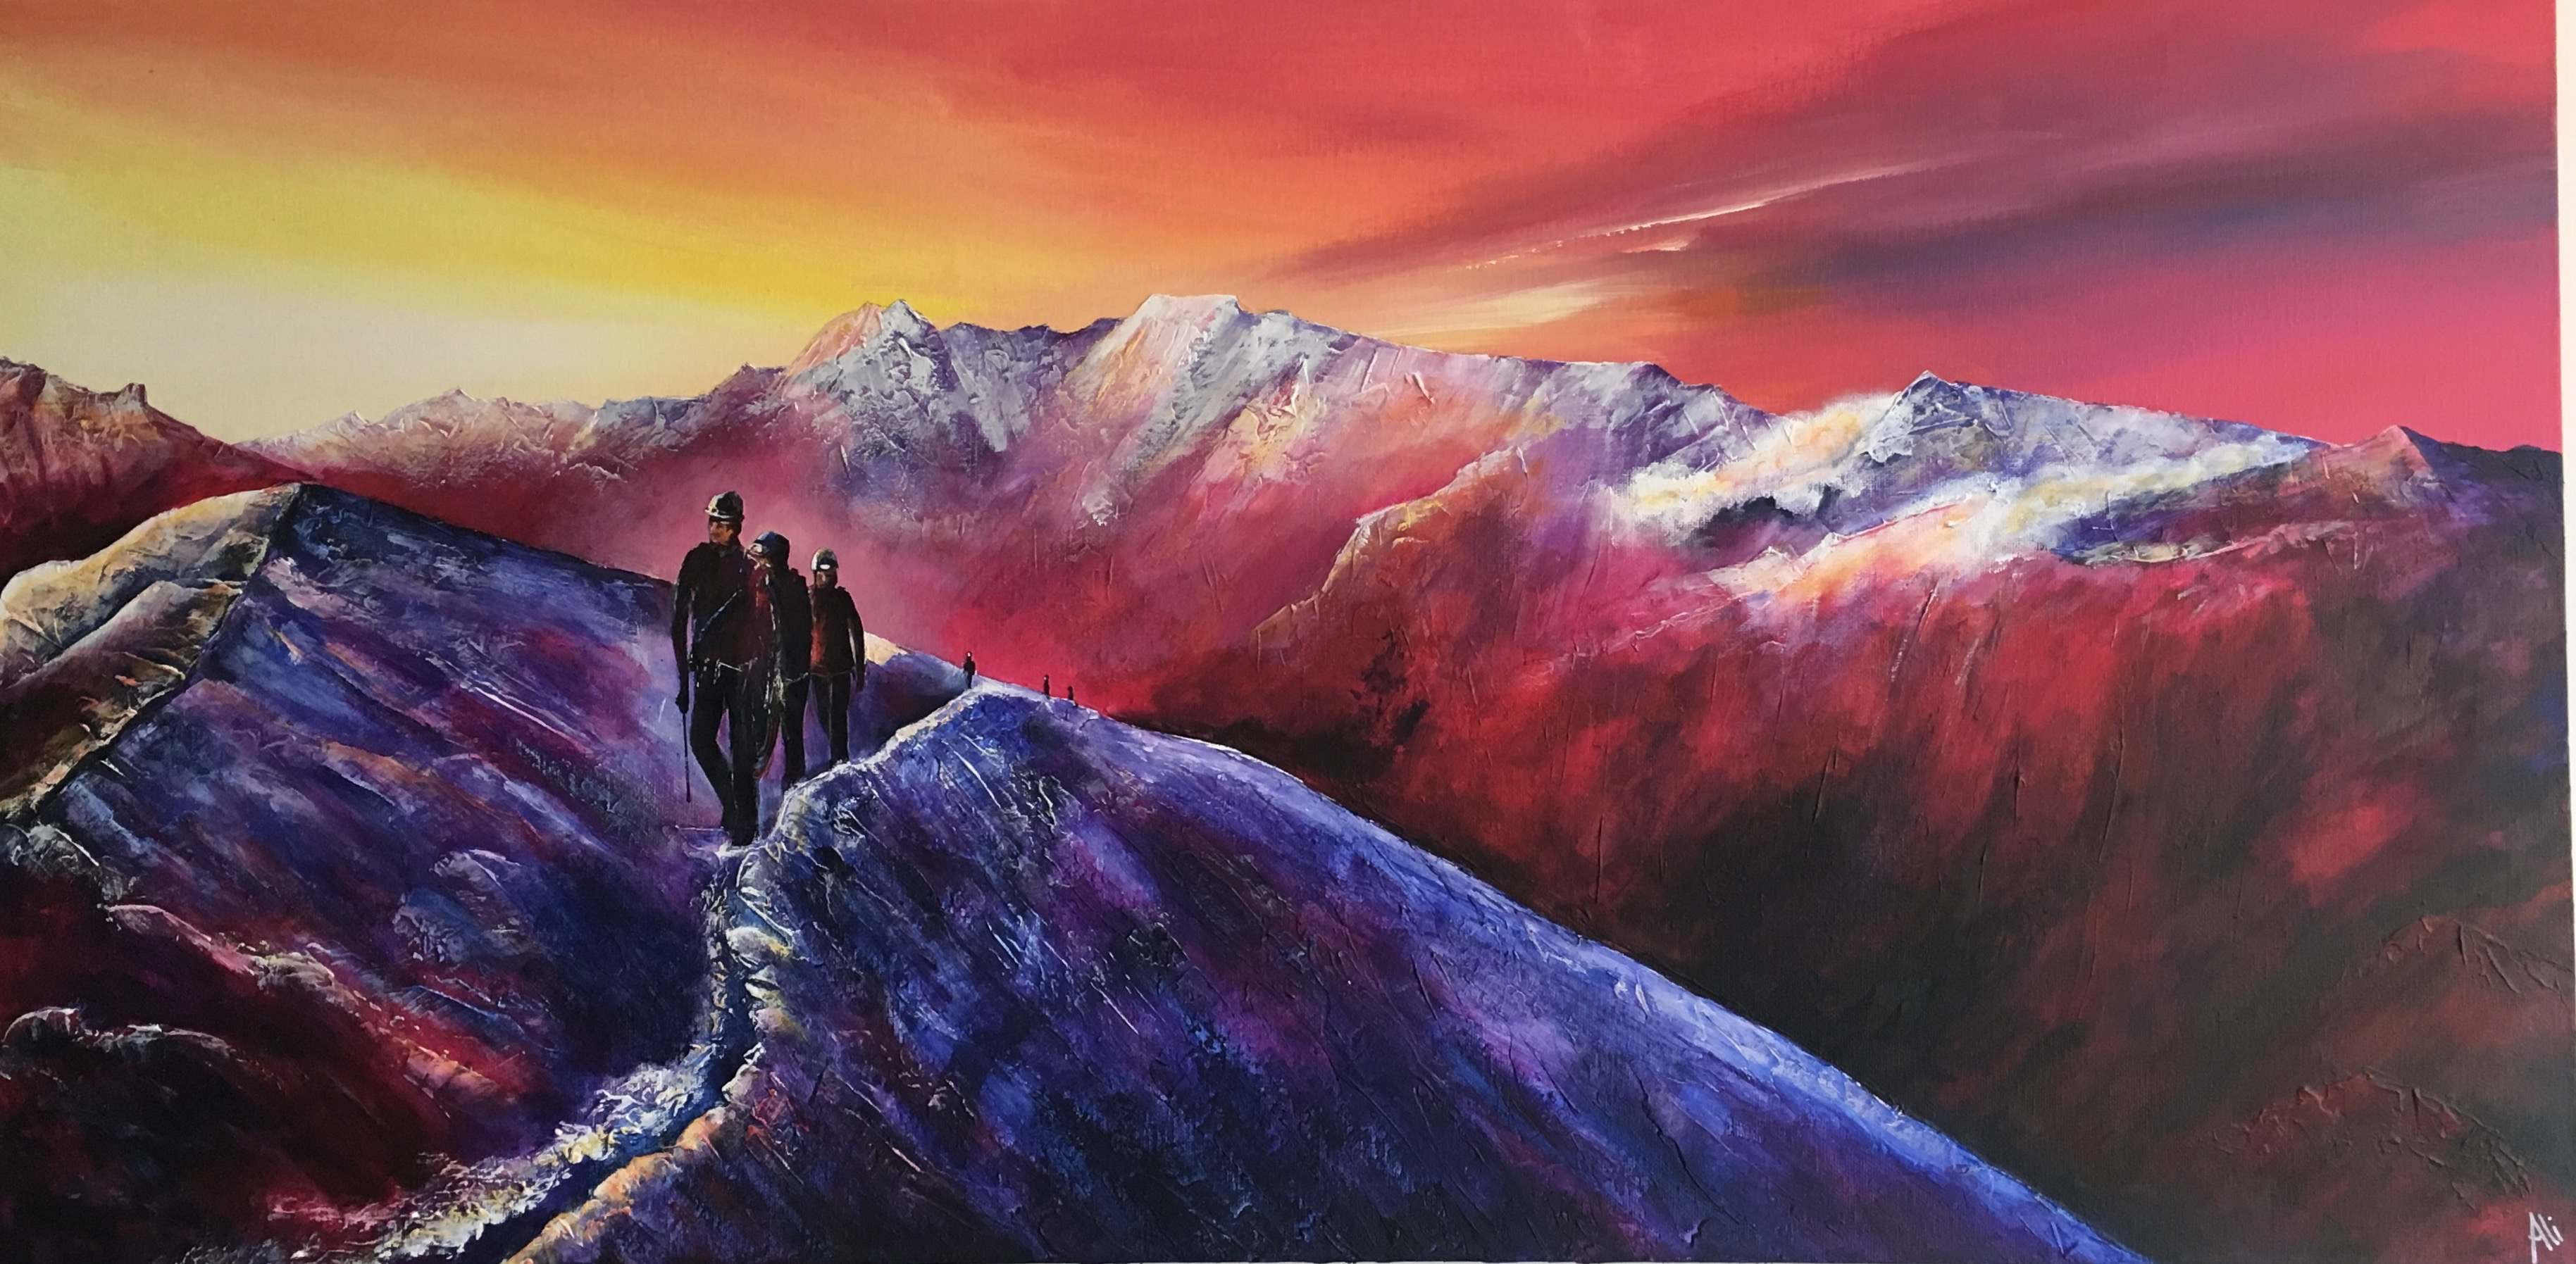 There is a permanent exhibition of my paintings of the Great Outdoors and climbers at